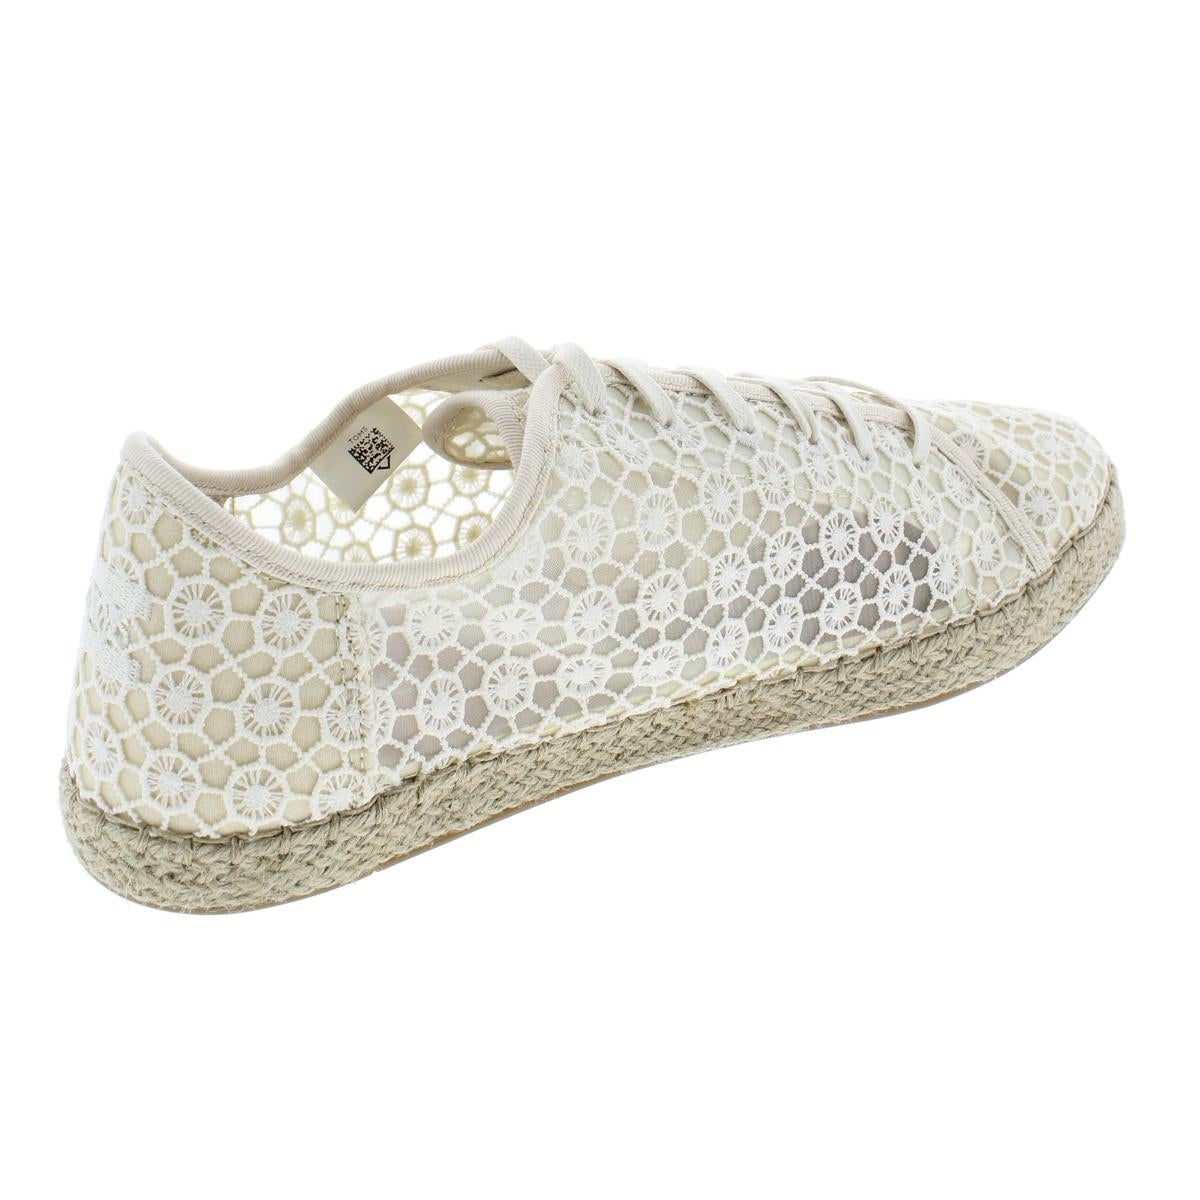 fe7acead8e6 Shop Toms Womens Lena Espadrilles Embroidered Mesh - 11 Medium (B